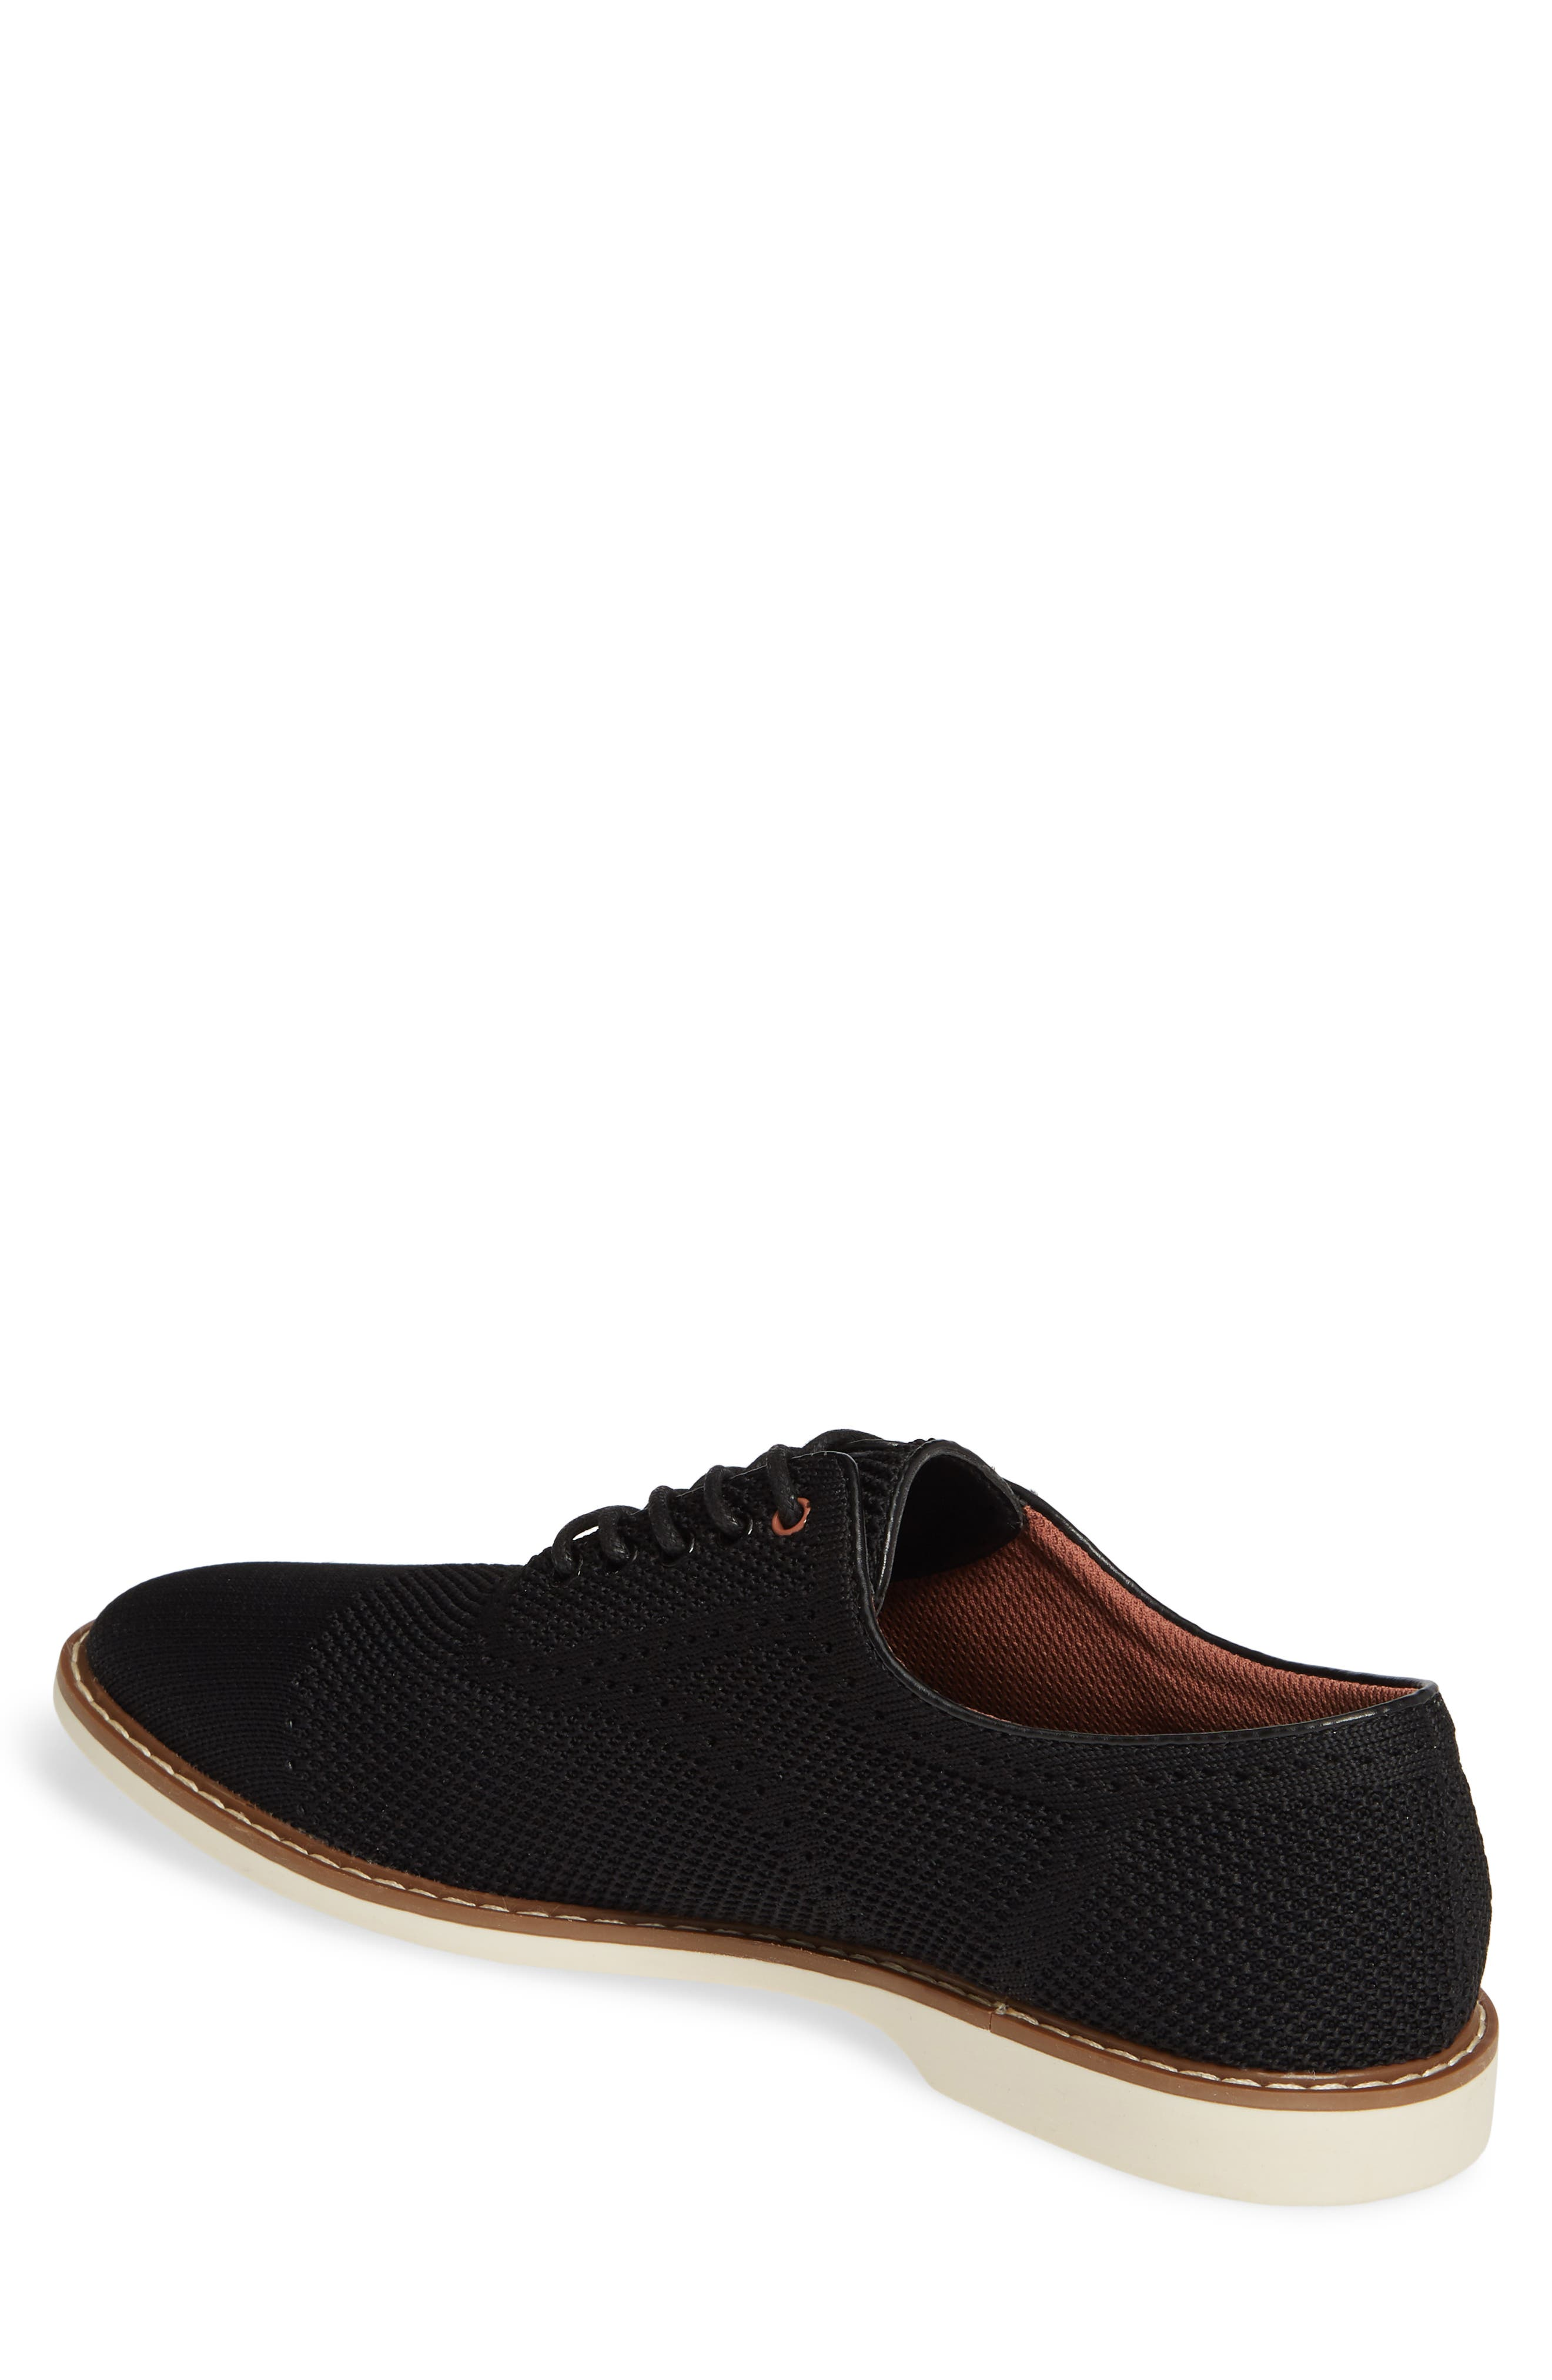 THE RAIL, Jared Plain Toe Oxford, Alternate thumbnail 2, color, BLACK